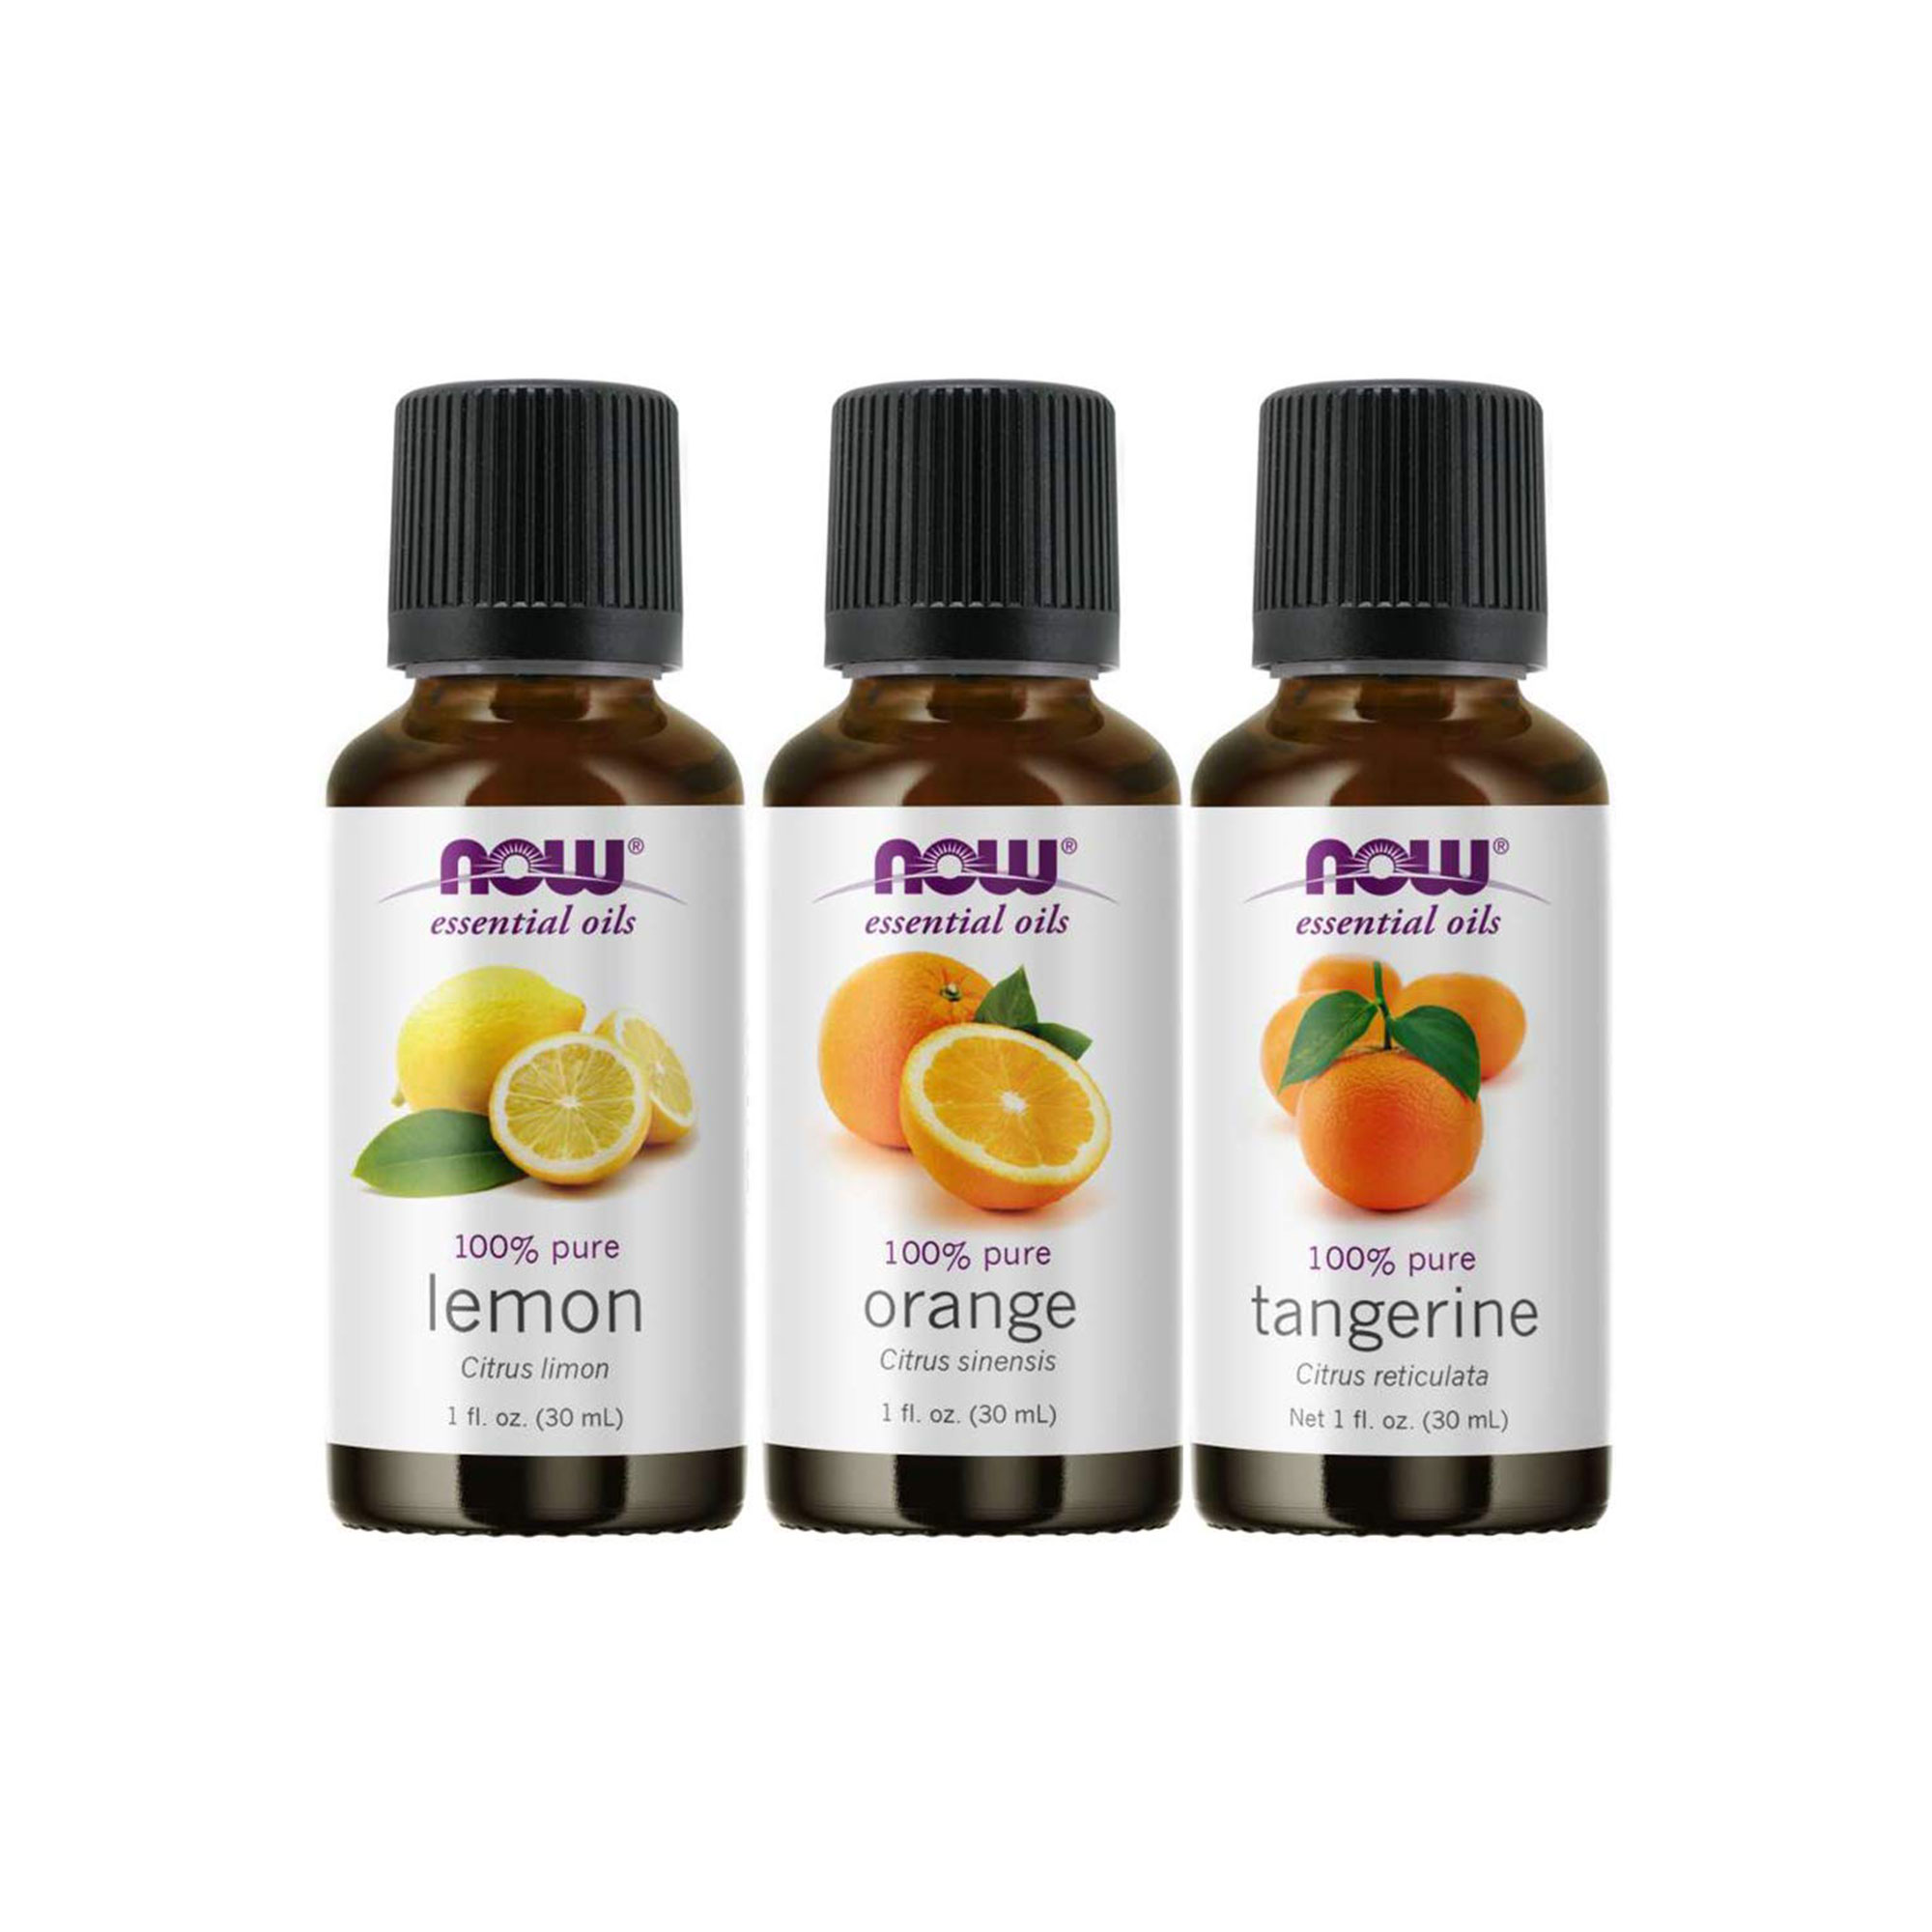 three bottles of essential oil on a white background